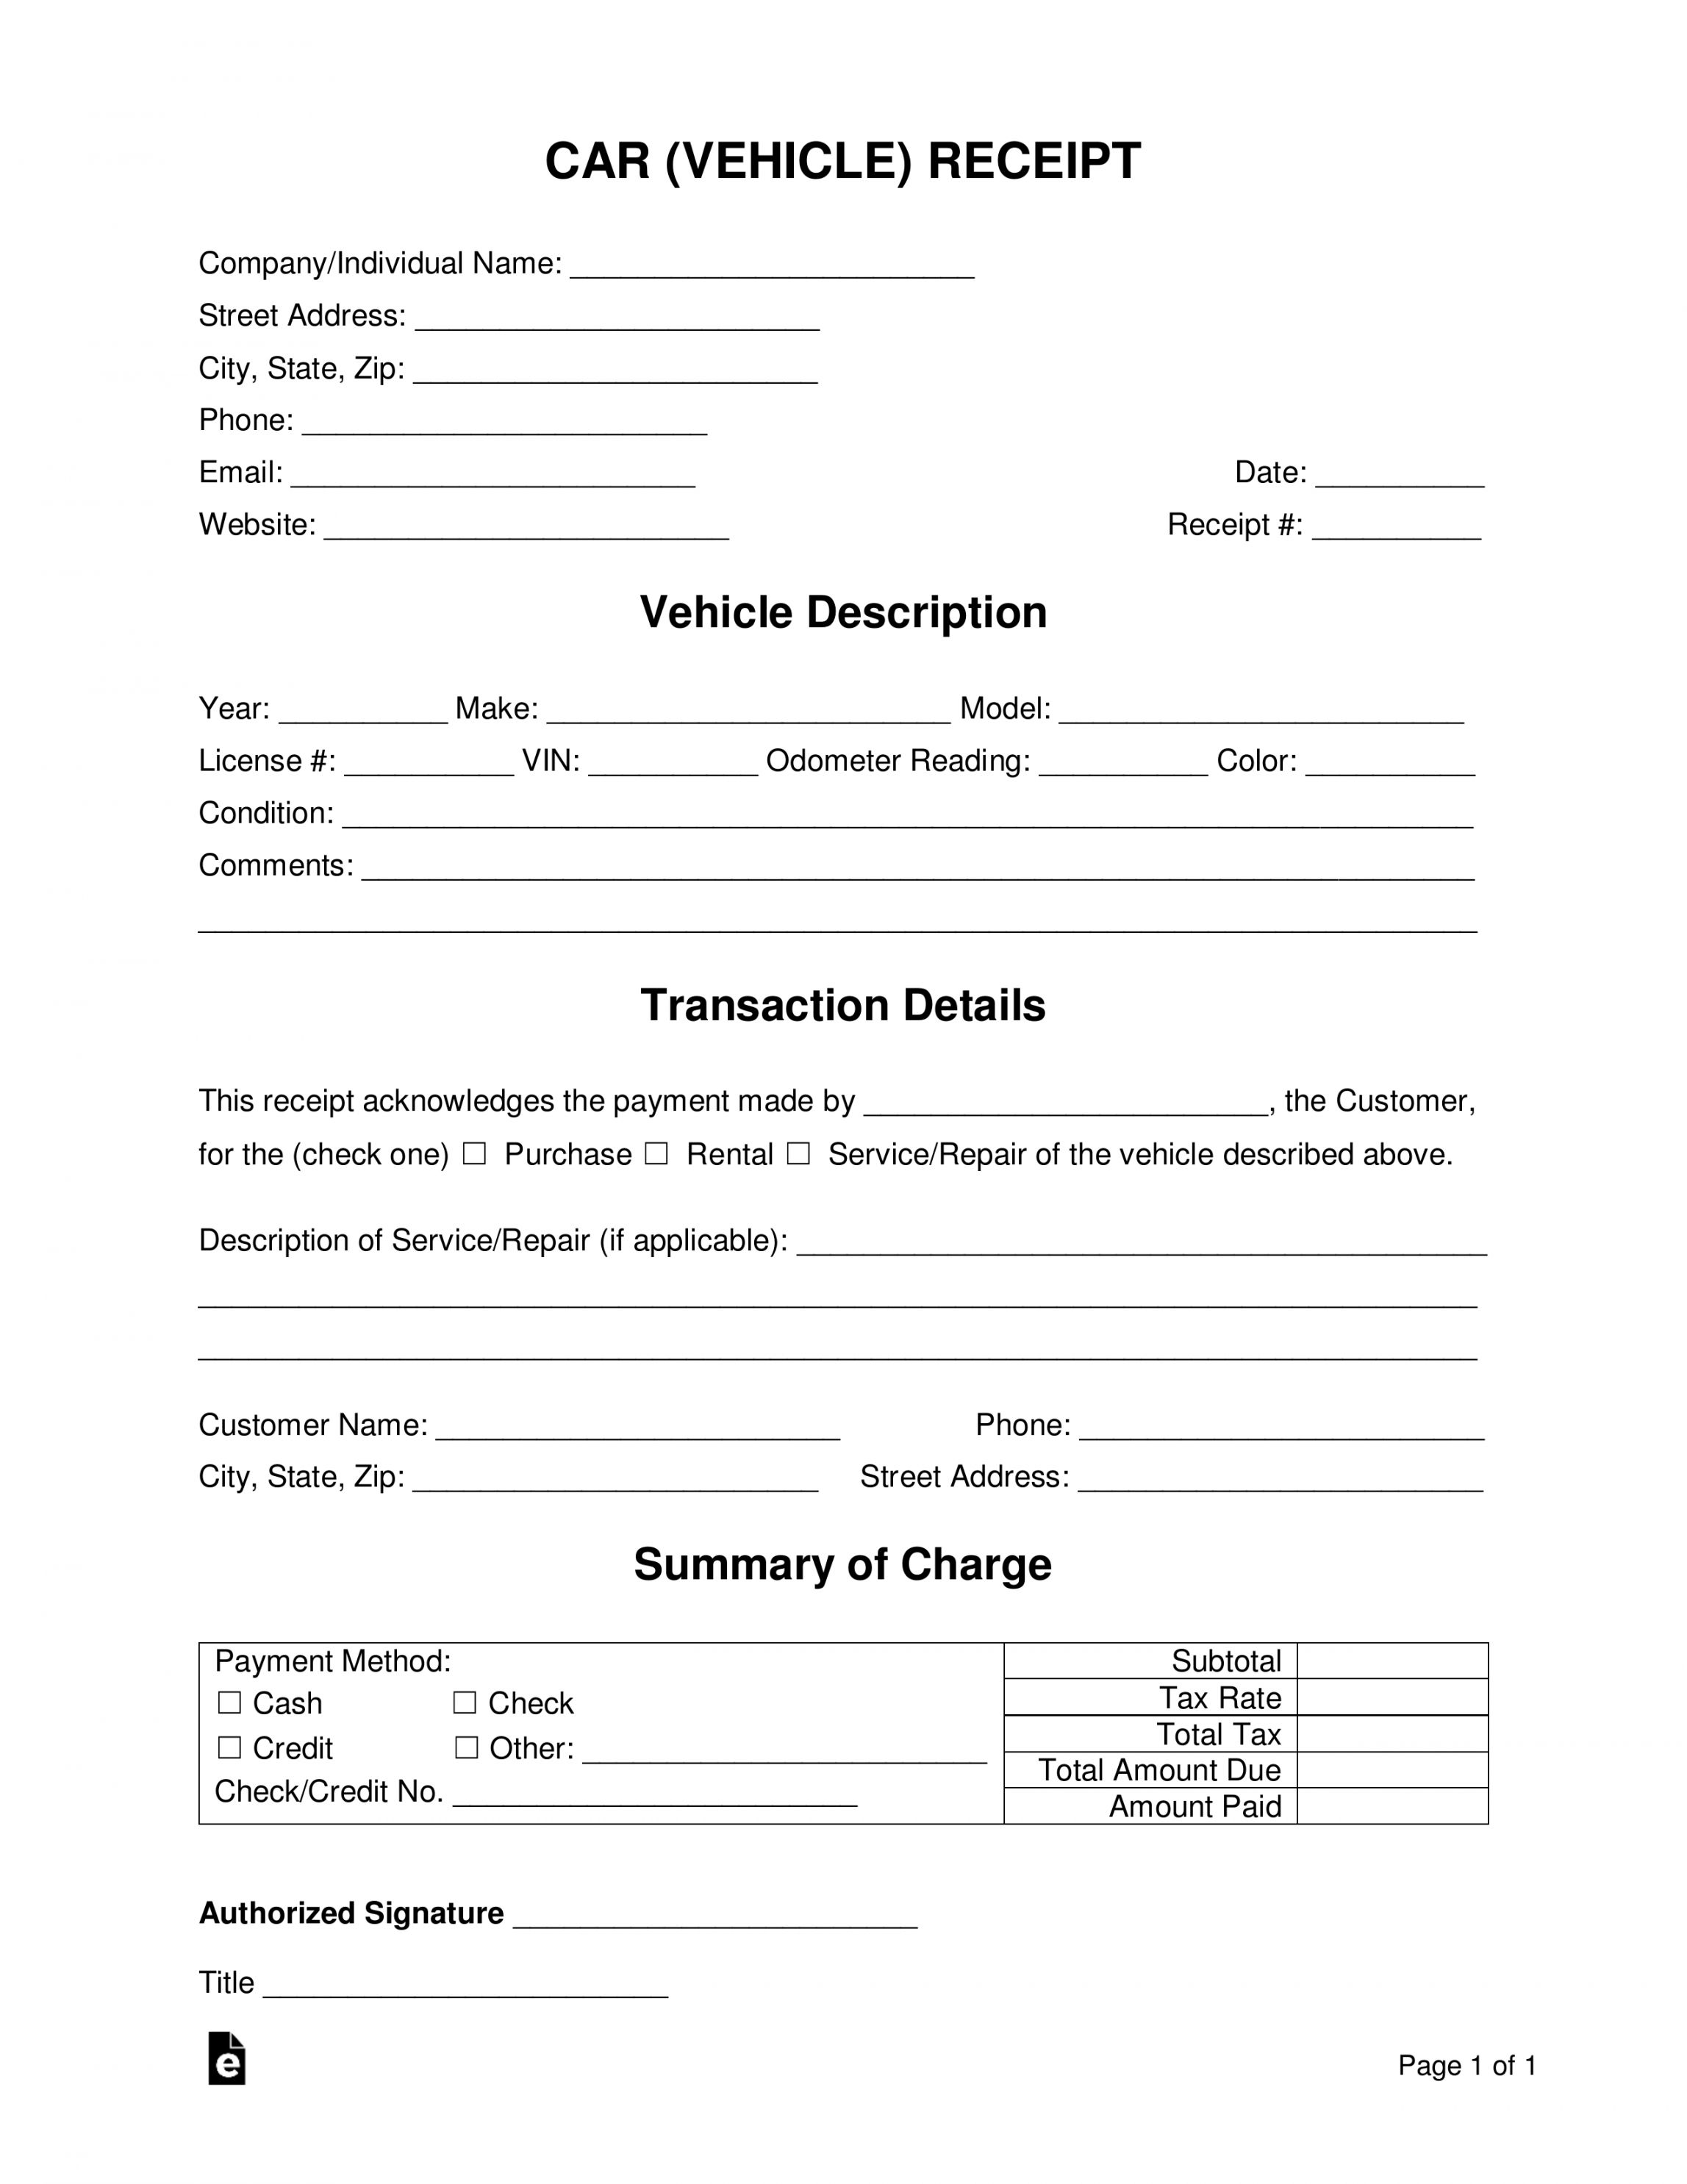 Browse Our Sample Of Car Towing Receipt Template Receipt Template Templates Receipt